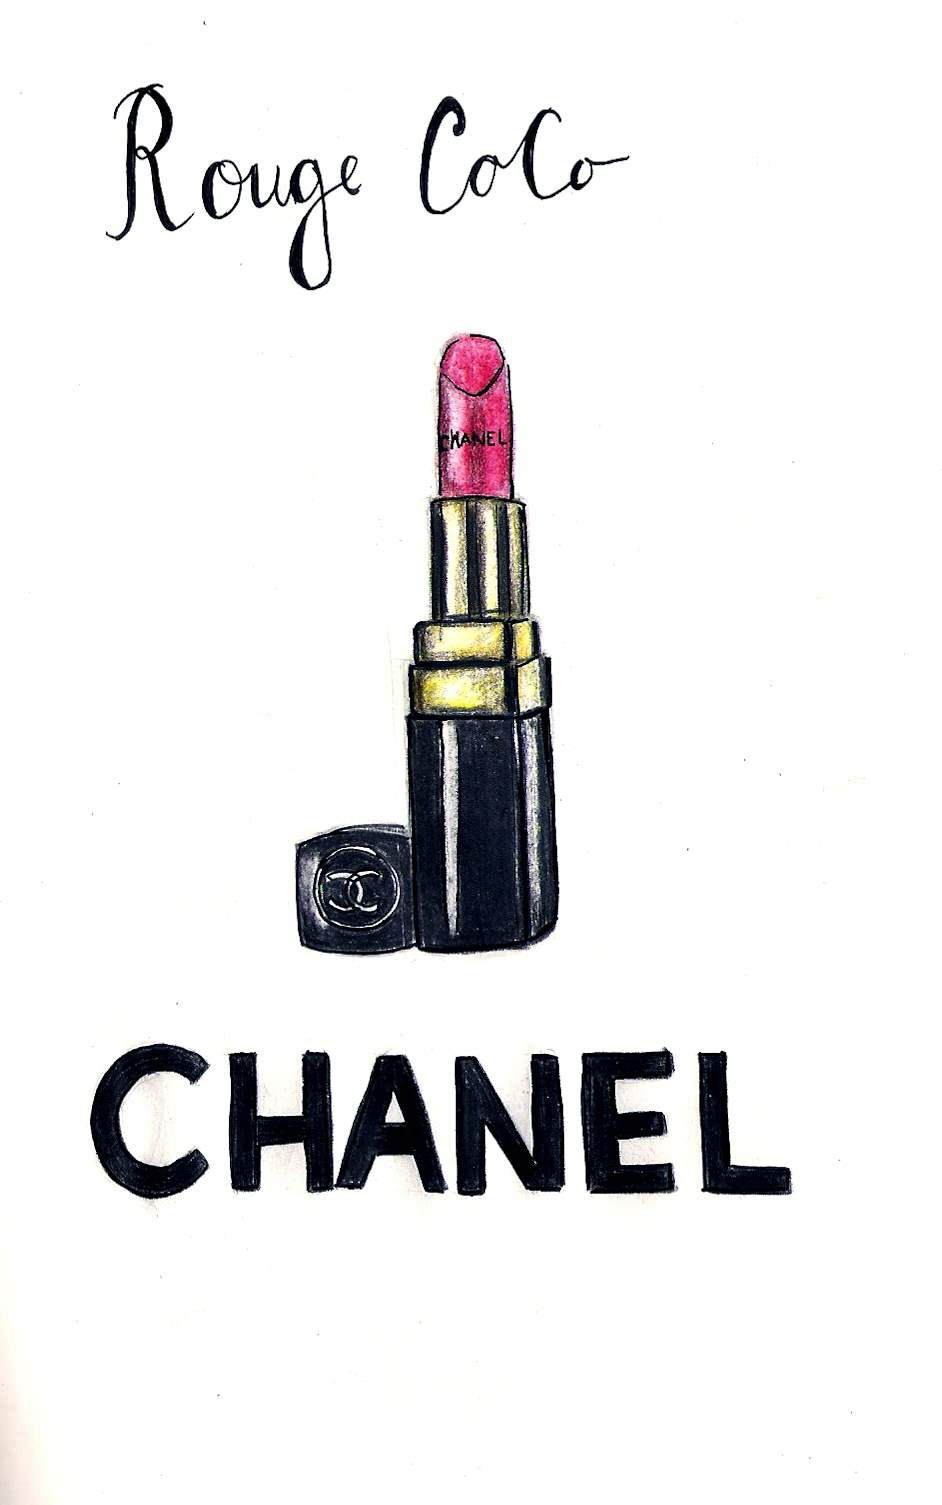 Chanel-illustration-wallpaper-wp5005850